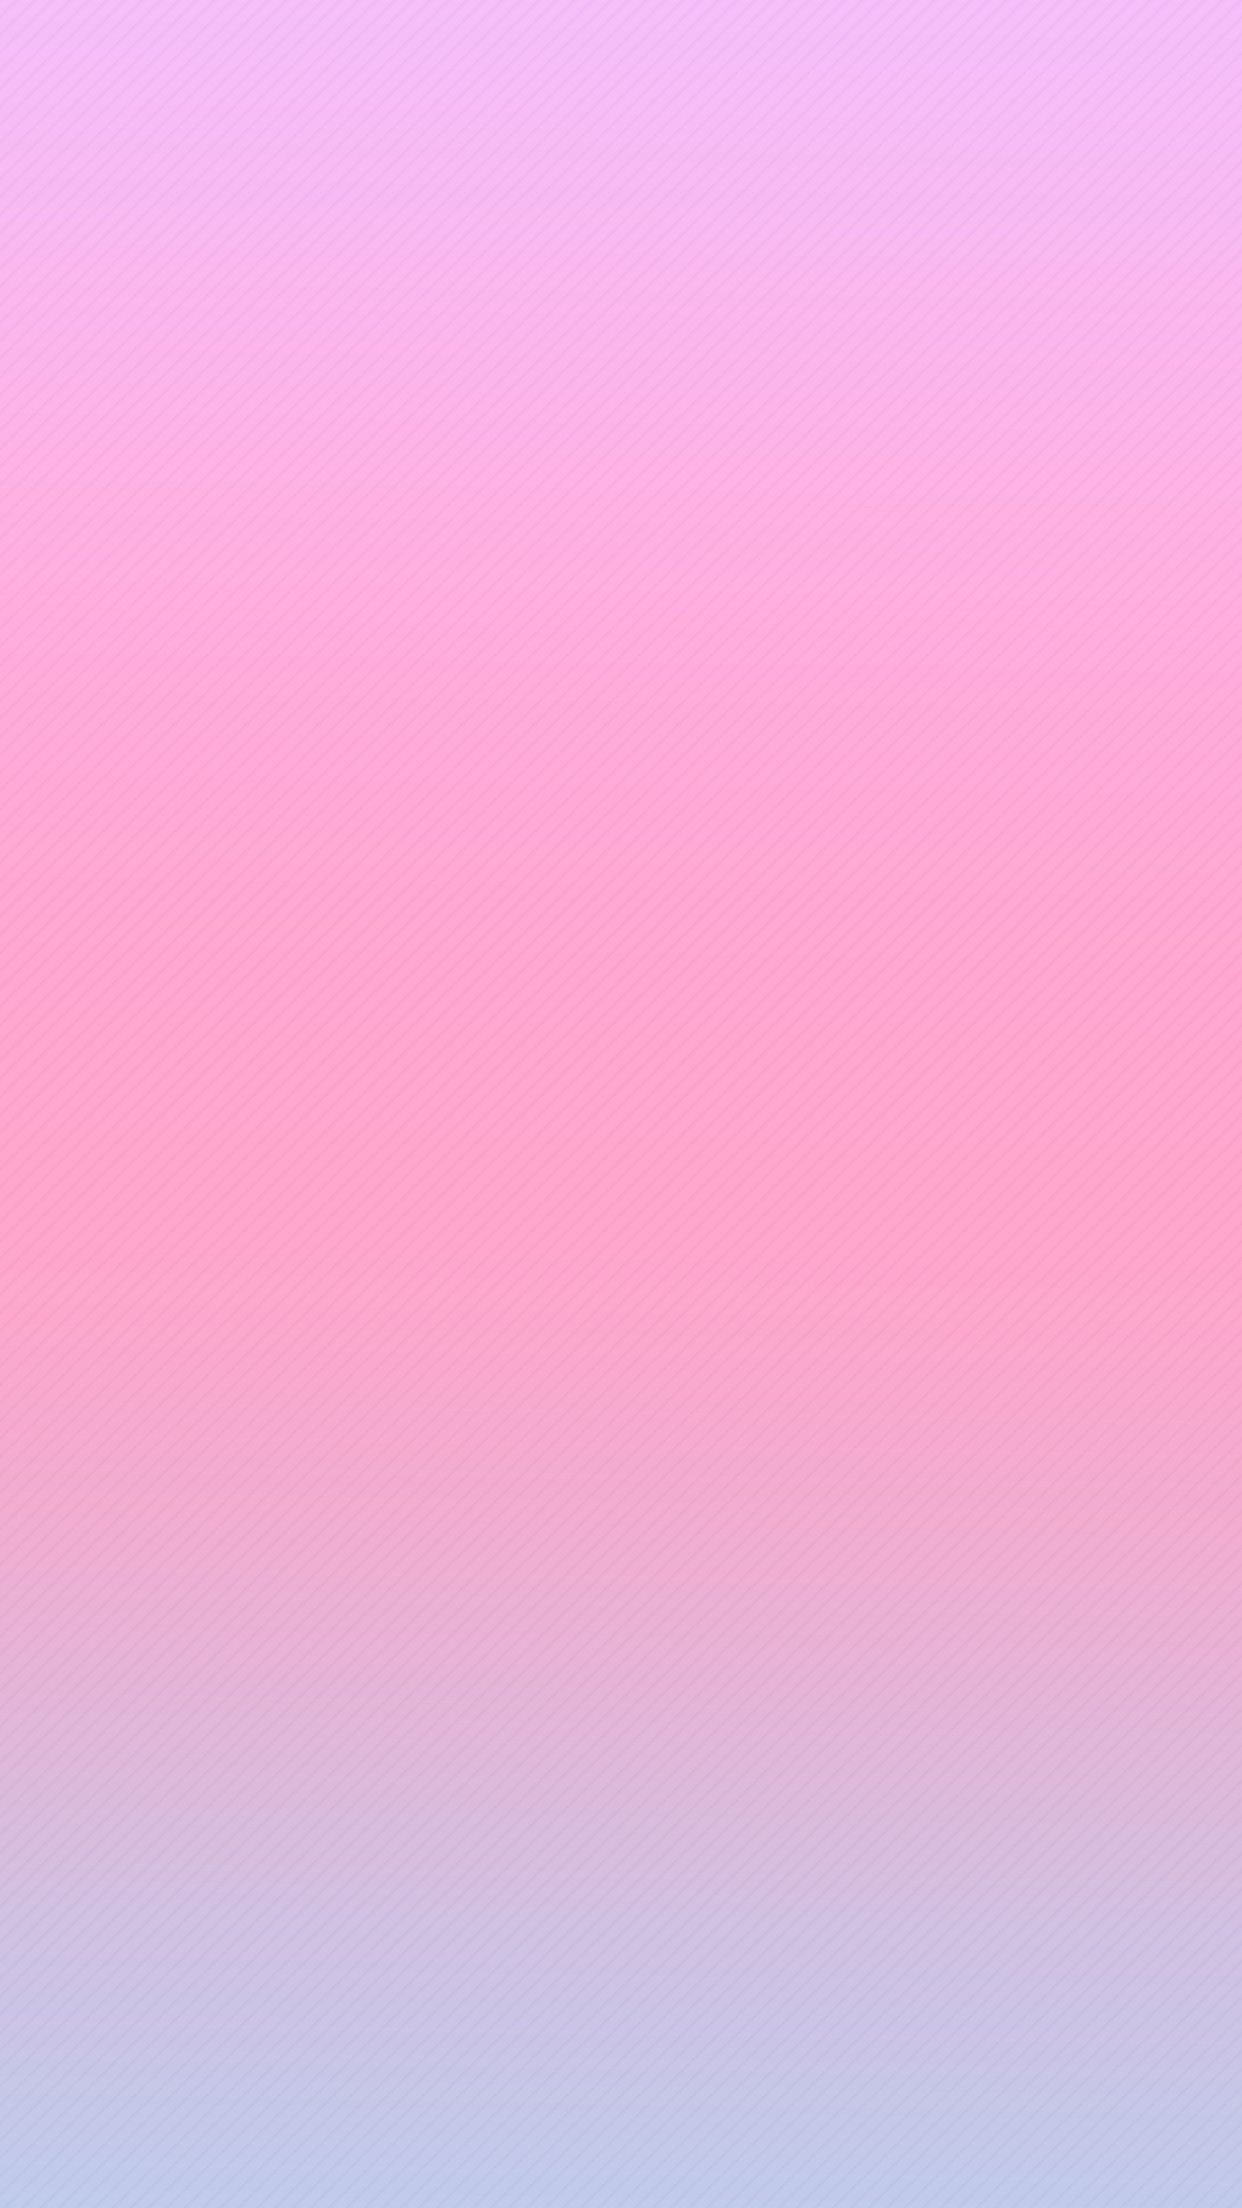 Res: 1242x2208, Wallpaper, background, iPhone, Android, HD, pink, purple, gradient,